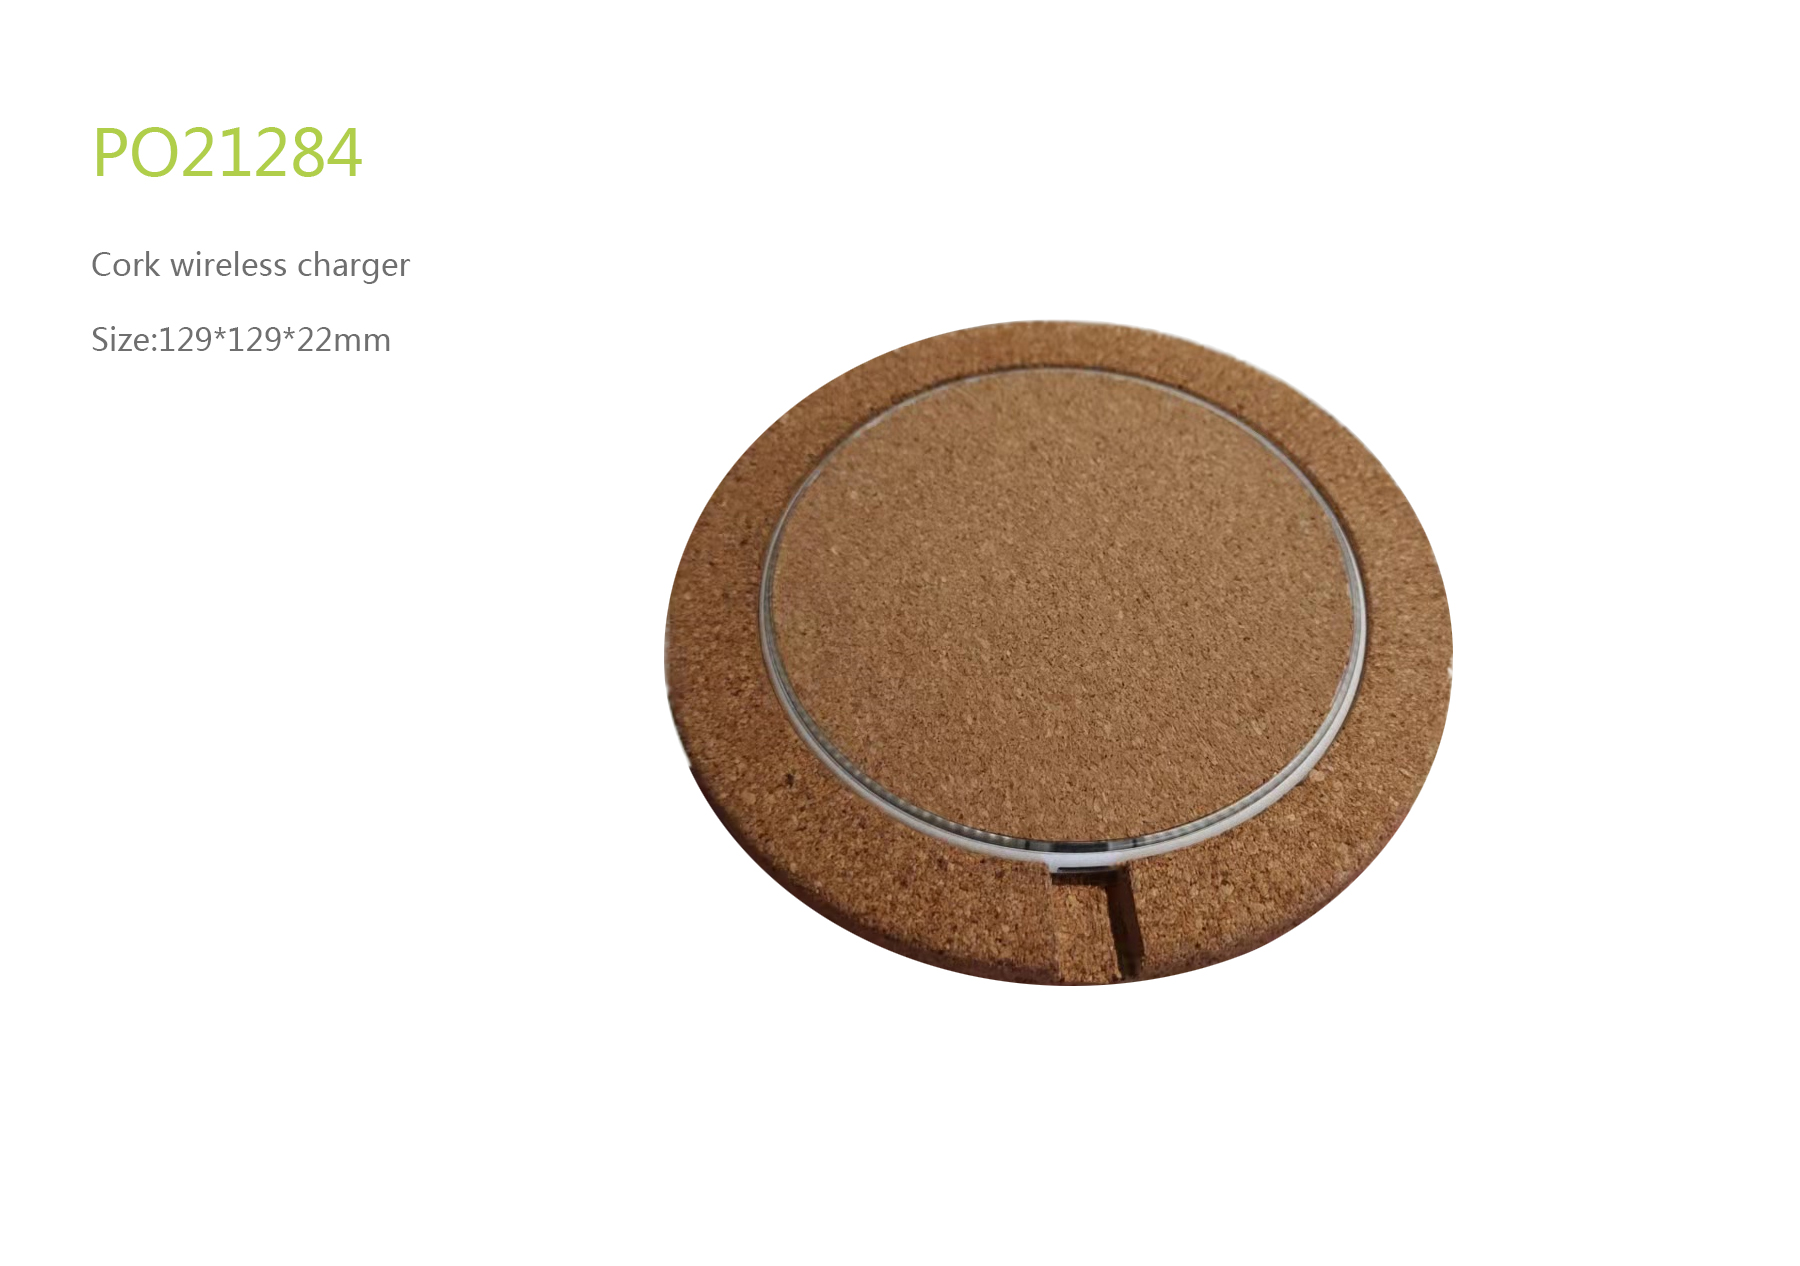 Cork Wireless Charger